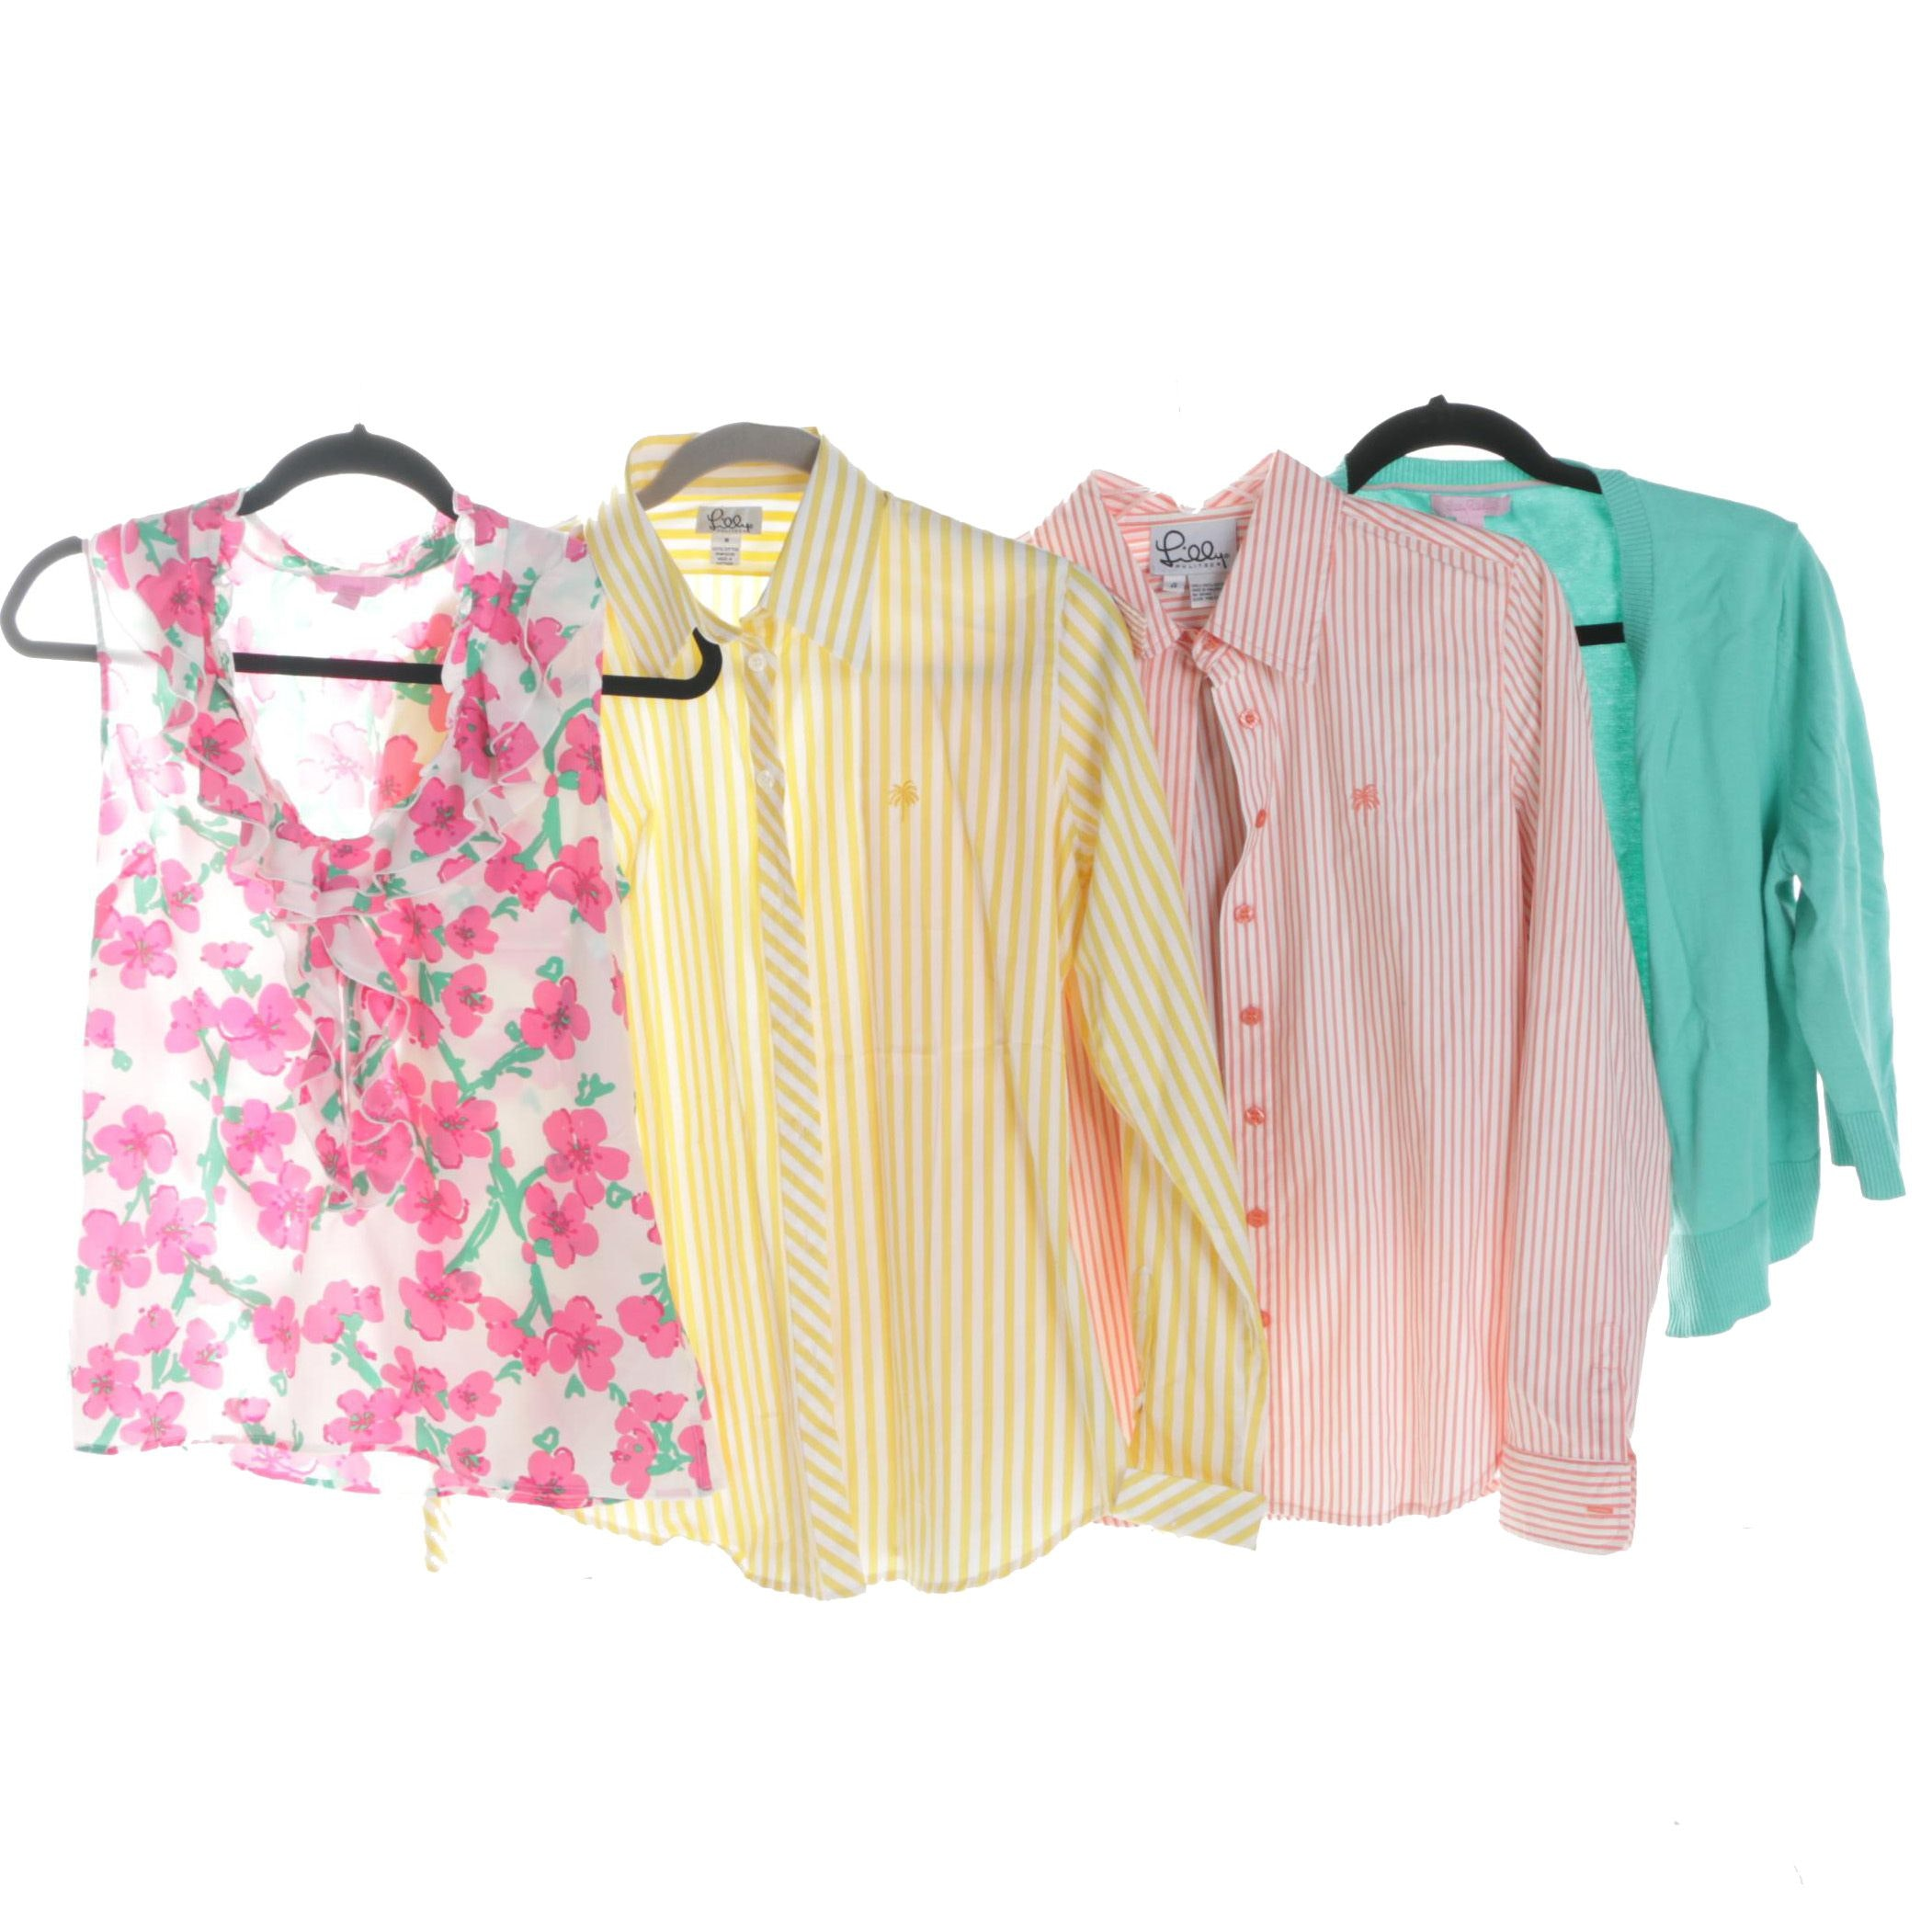 Assortment of Lily Pulitzer Tops